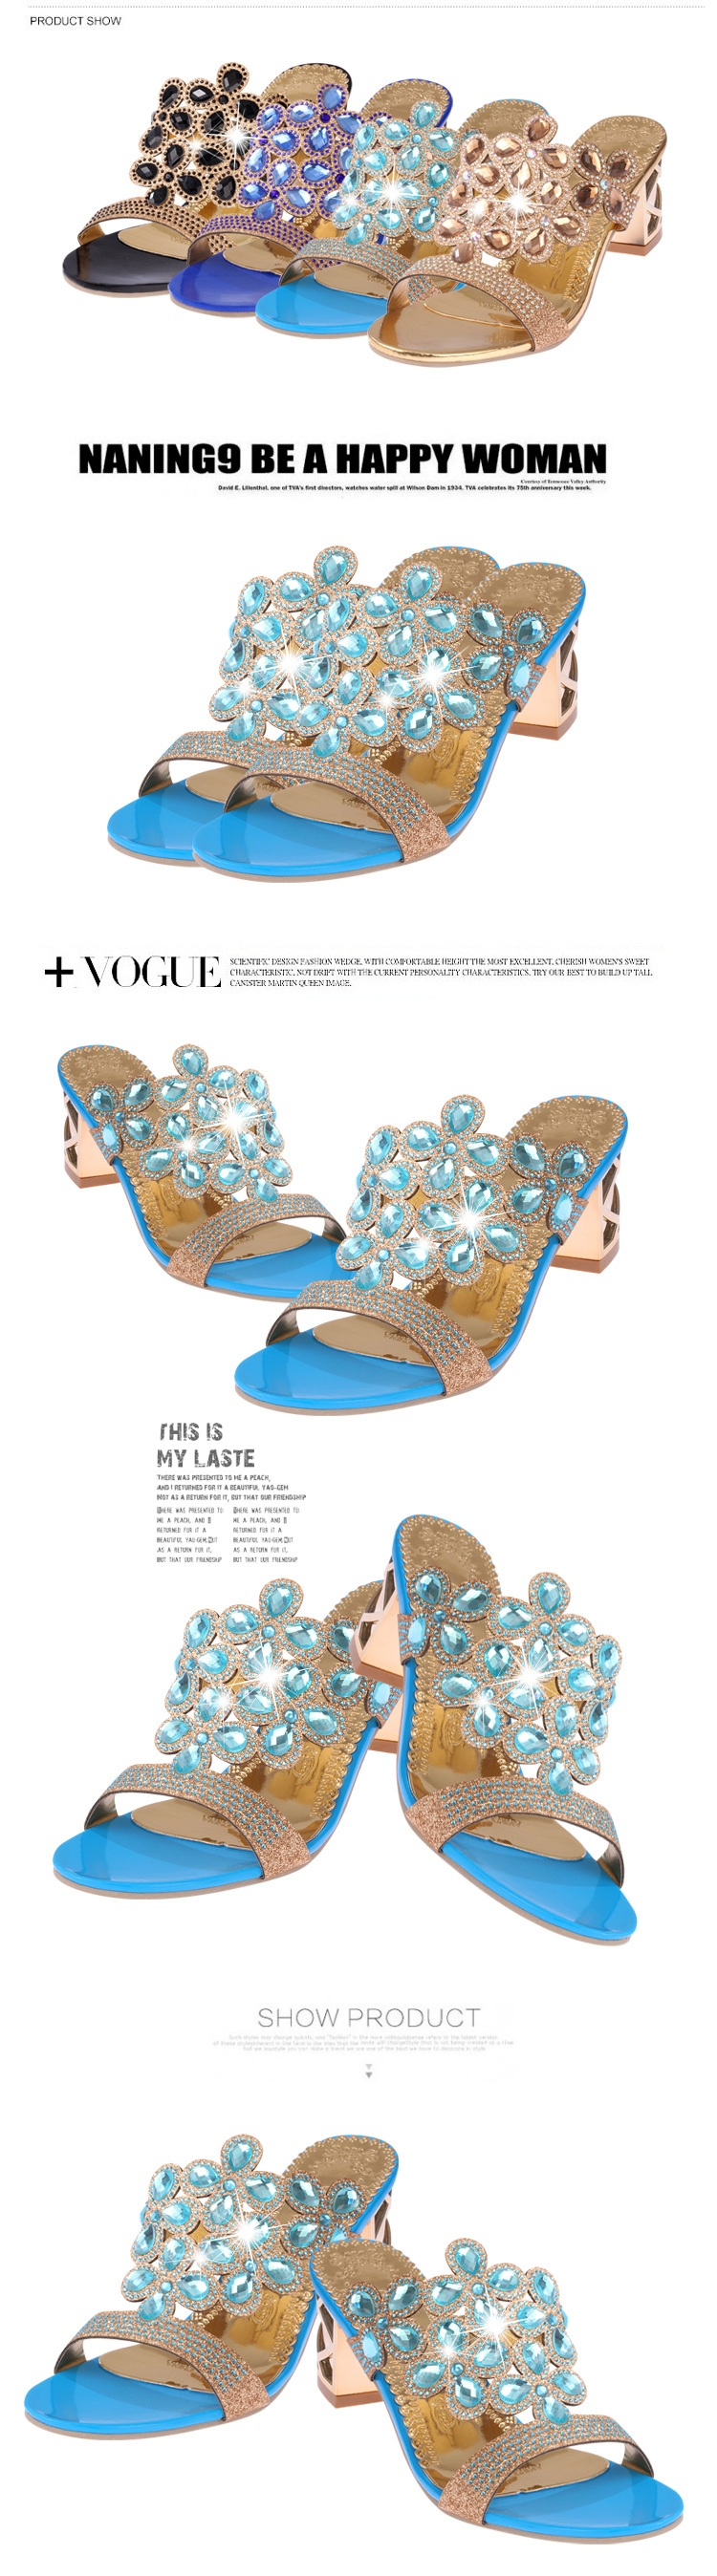 HTB1ra3QcamWBuNkHFJHq6yatVXaG Designer Sandals Women 2018 Ladies Slides Women Slippers Sandals Summer Crystal Shoes Peep Toe Middle Heels Zapatos Mujer